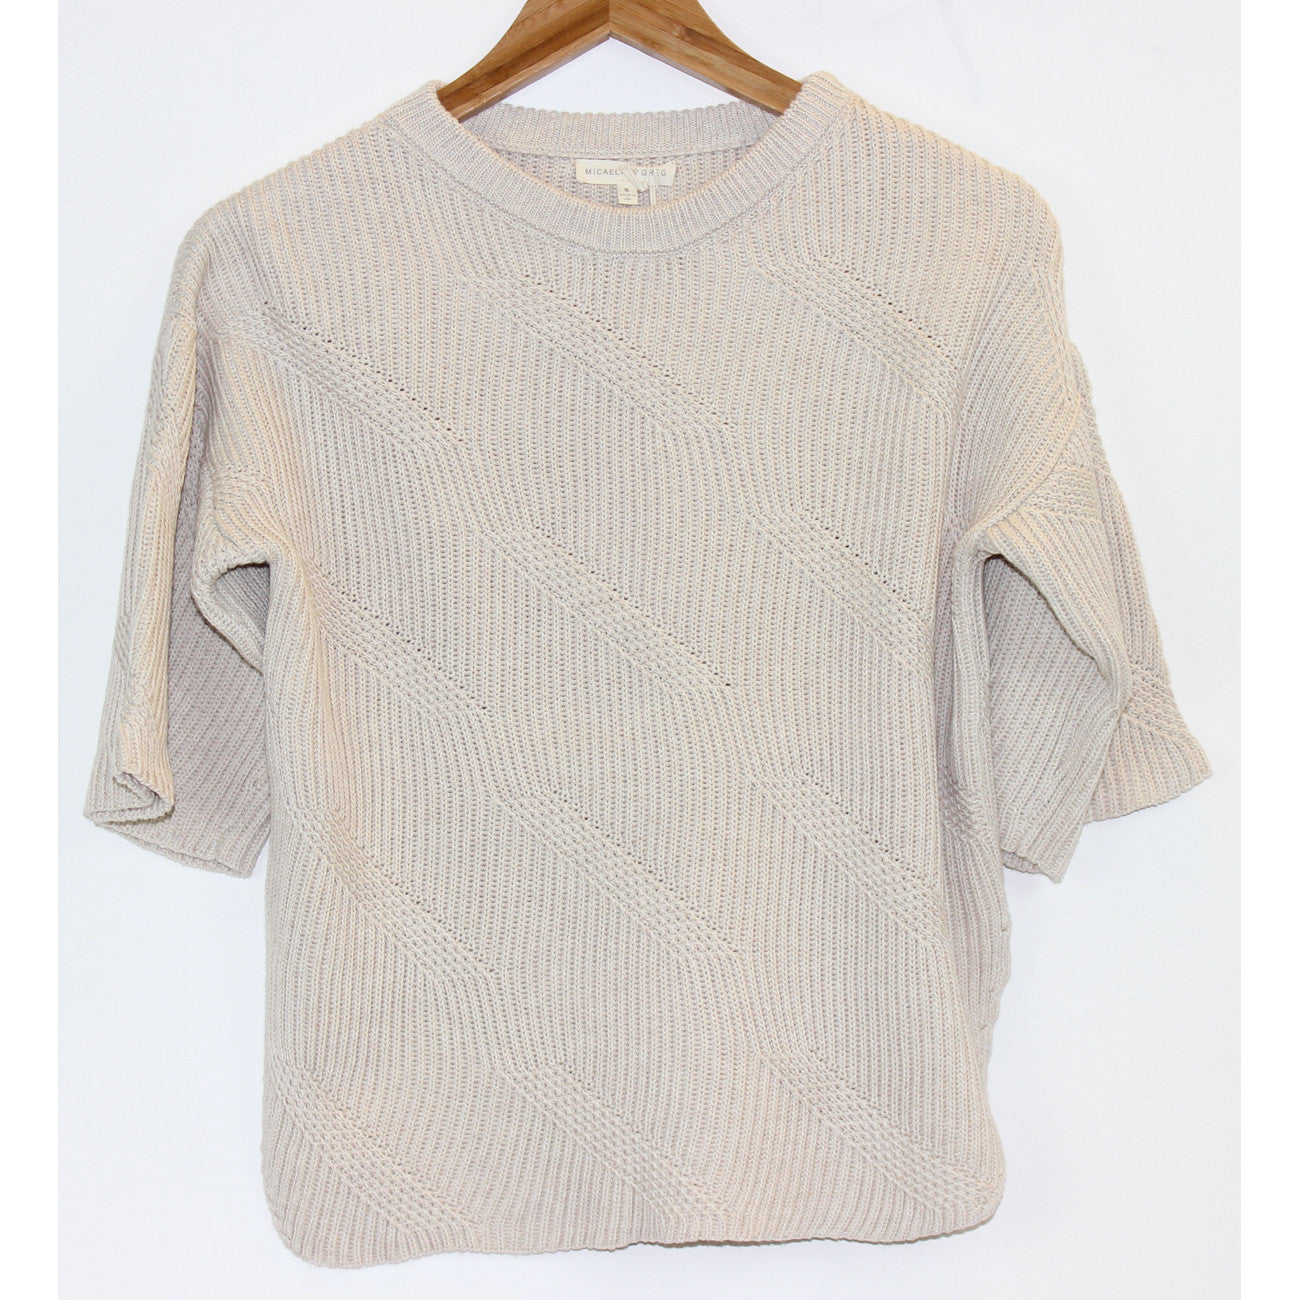 Micaela Greg Dash Sweater in Cream